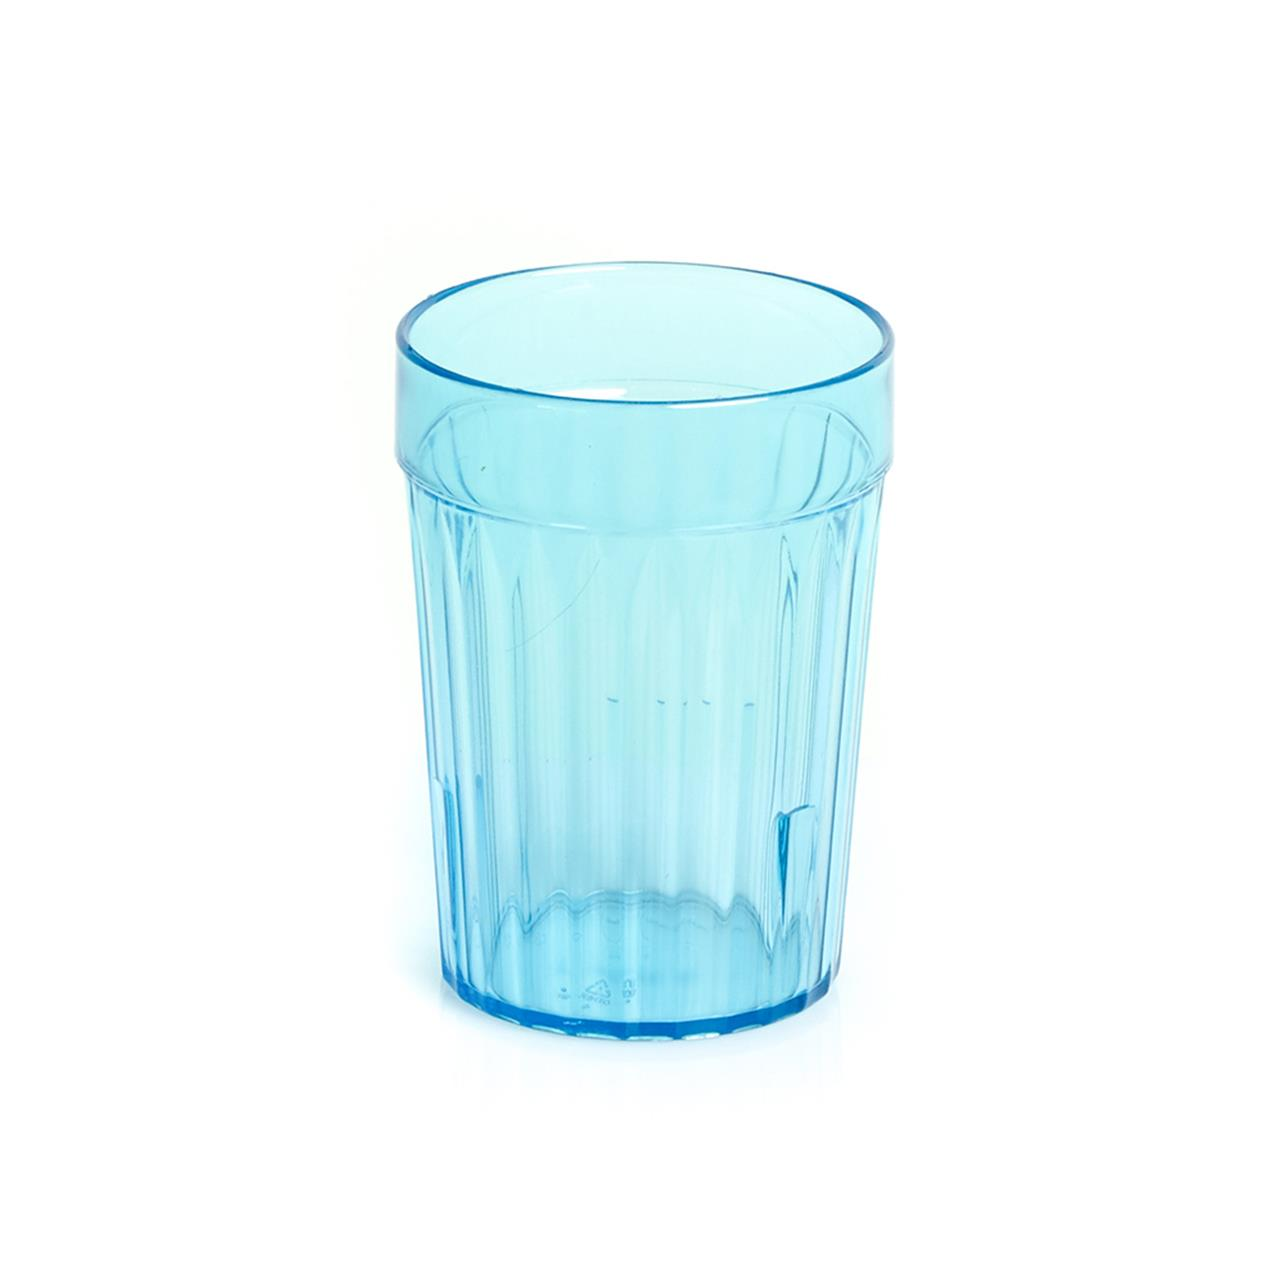 TUMBLER FEEDER CUP BLUE 230ML, EACH